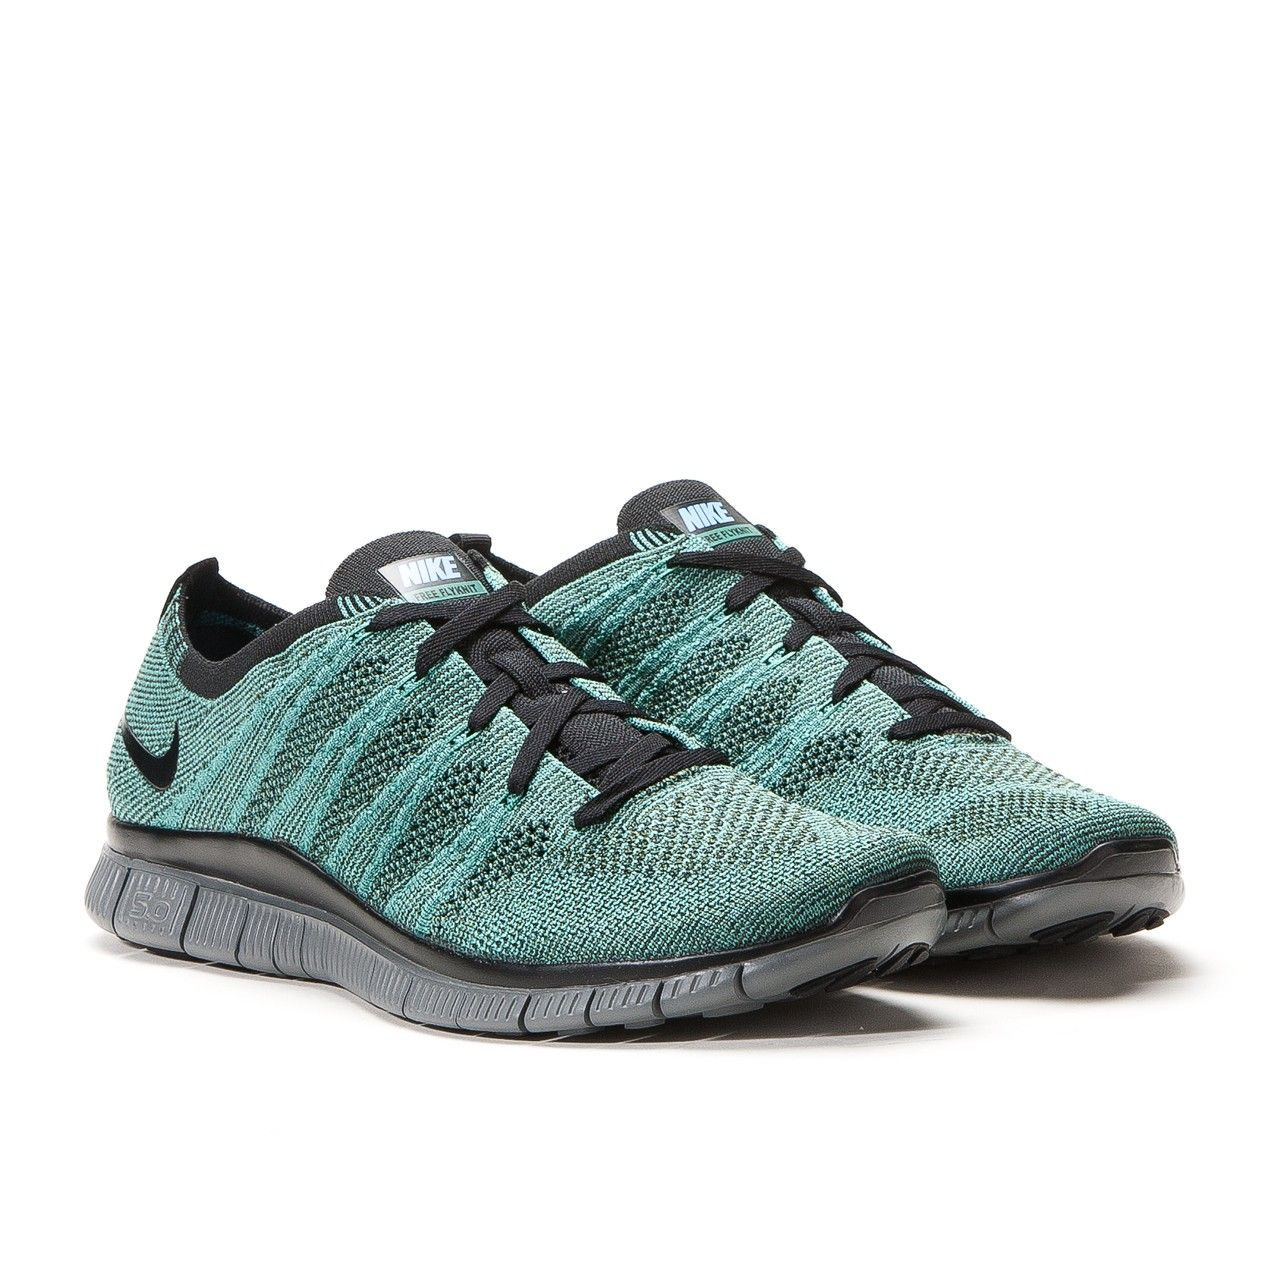 Nike Free Flyknit NSW (Rough Green) | Shoes